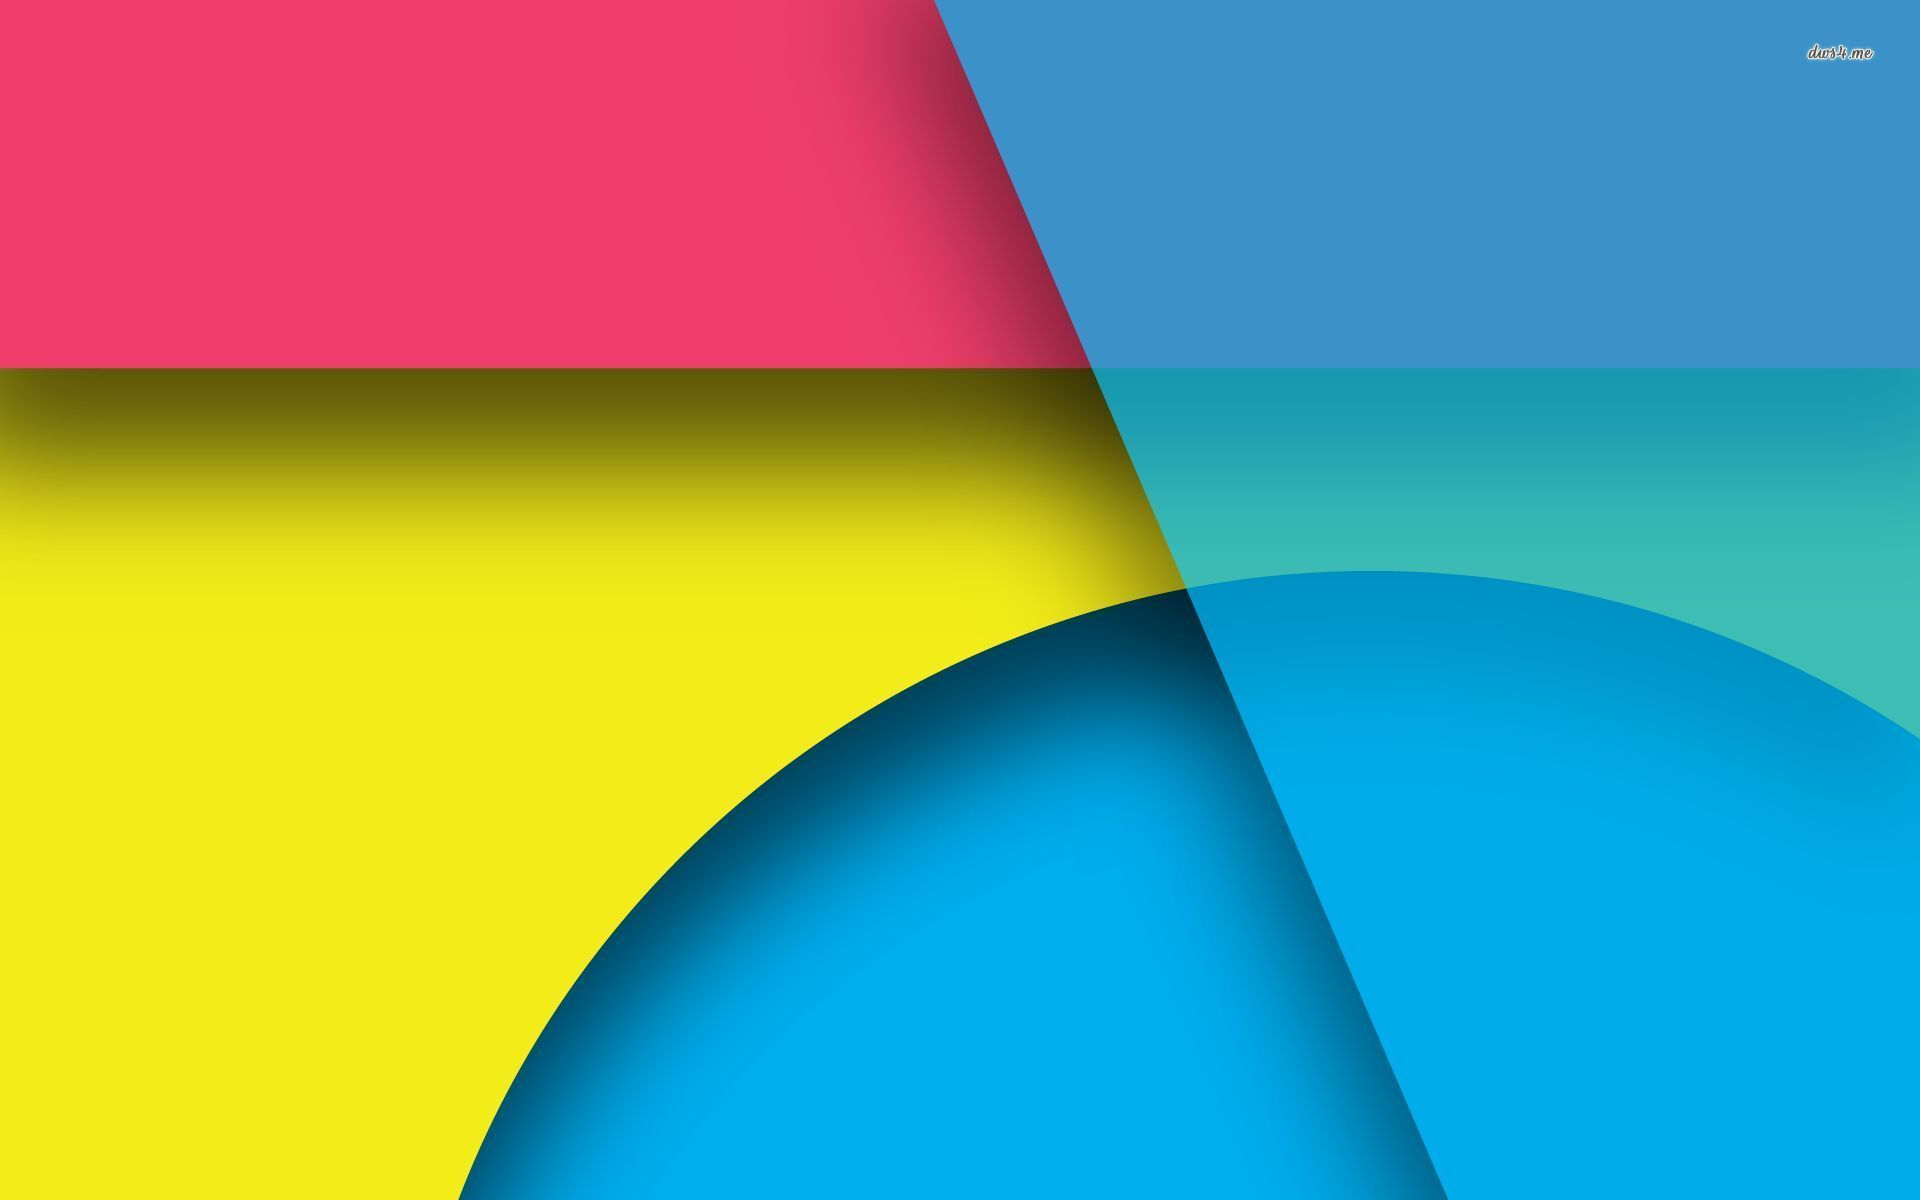 Abstract Shapes Wallpapers Top Free Abstract Shapes